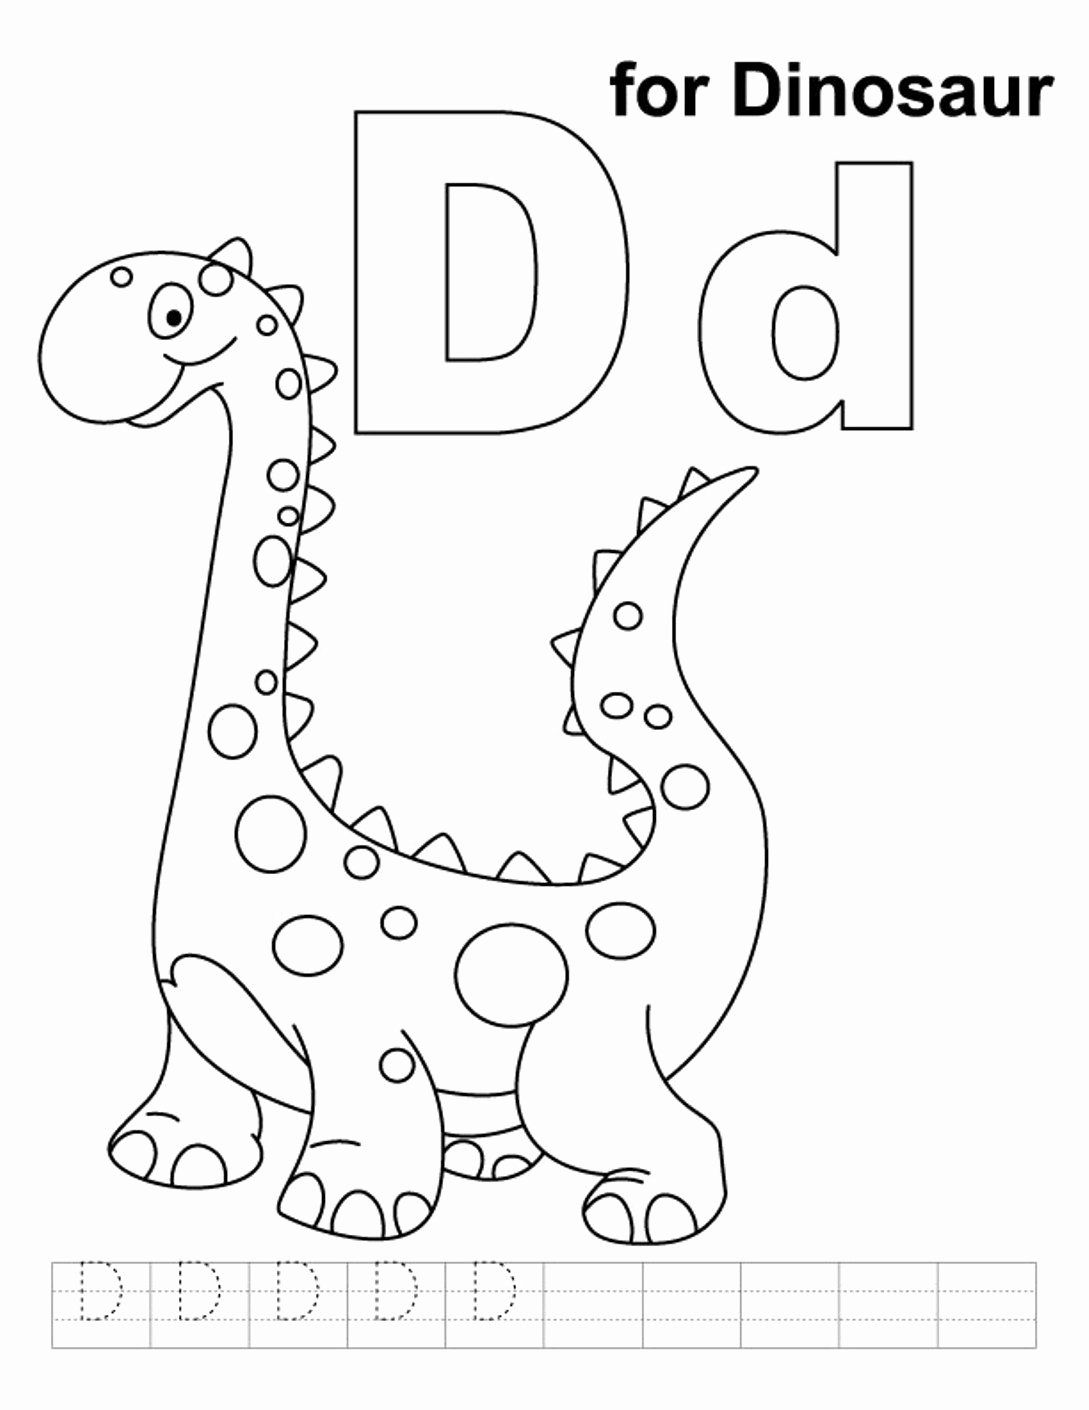 Alphabet Coloring Worksheets for 7 Year Olds Elegant Dinosaur